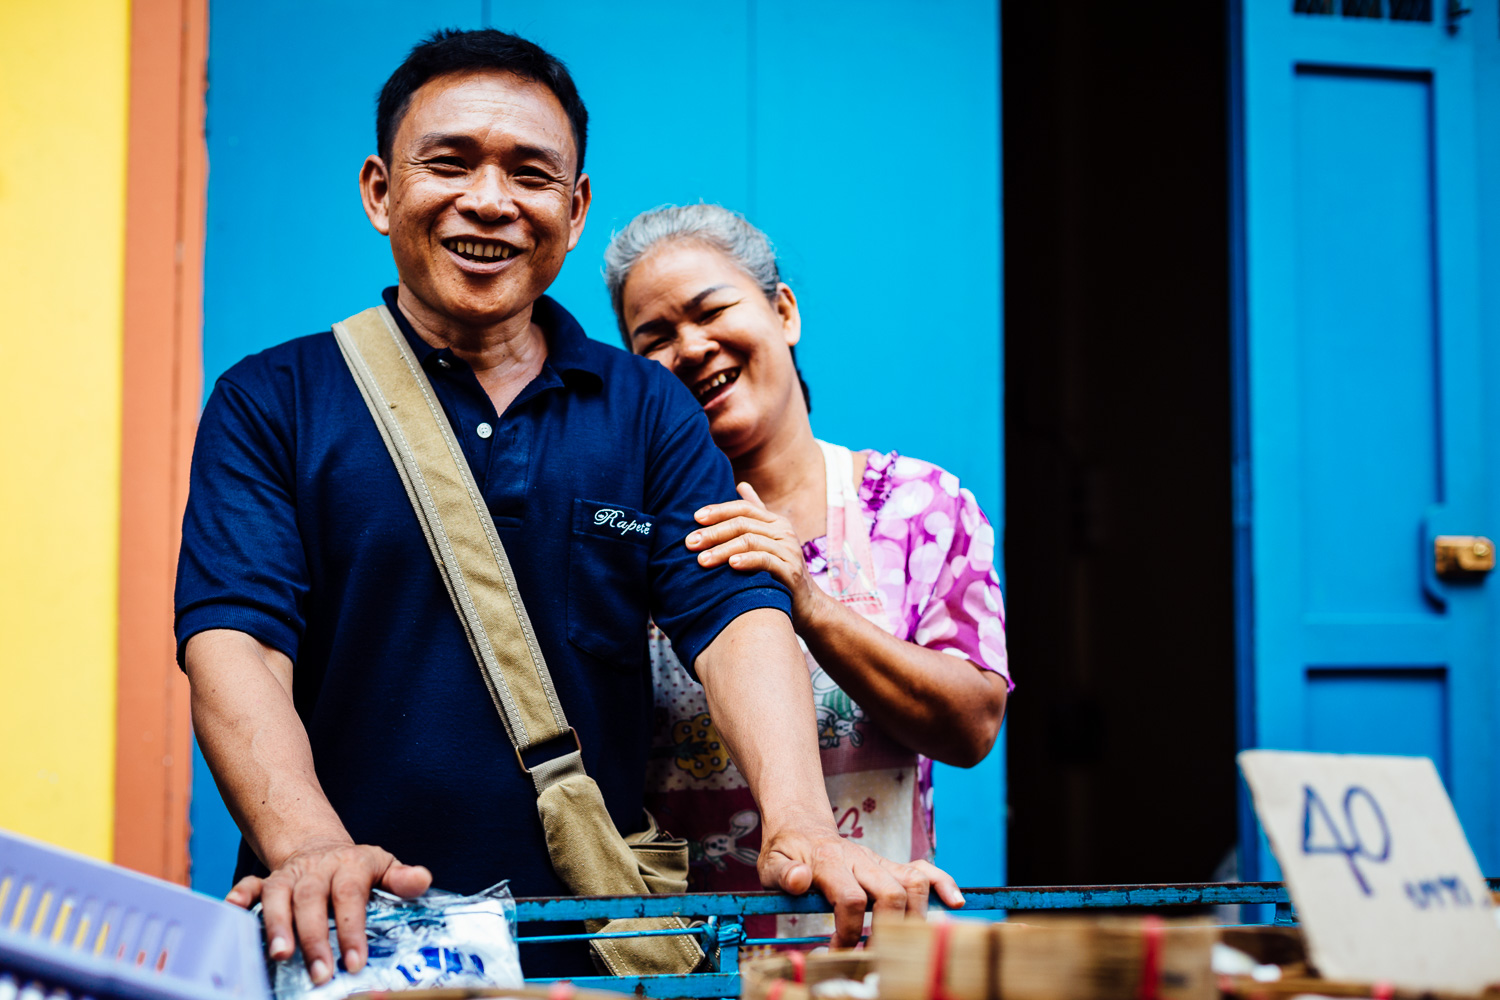 Bangkok-Thailand-Travel-Photography-Smile-People-Couple-Vendor-Color